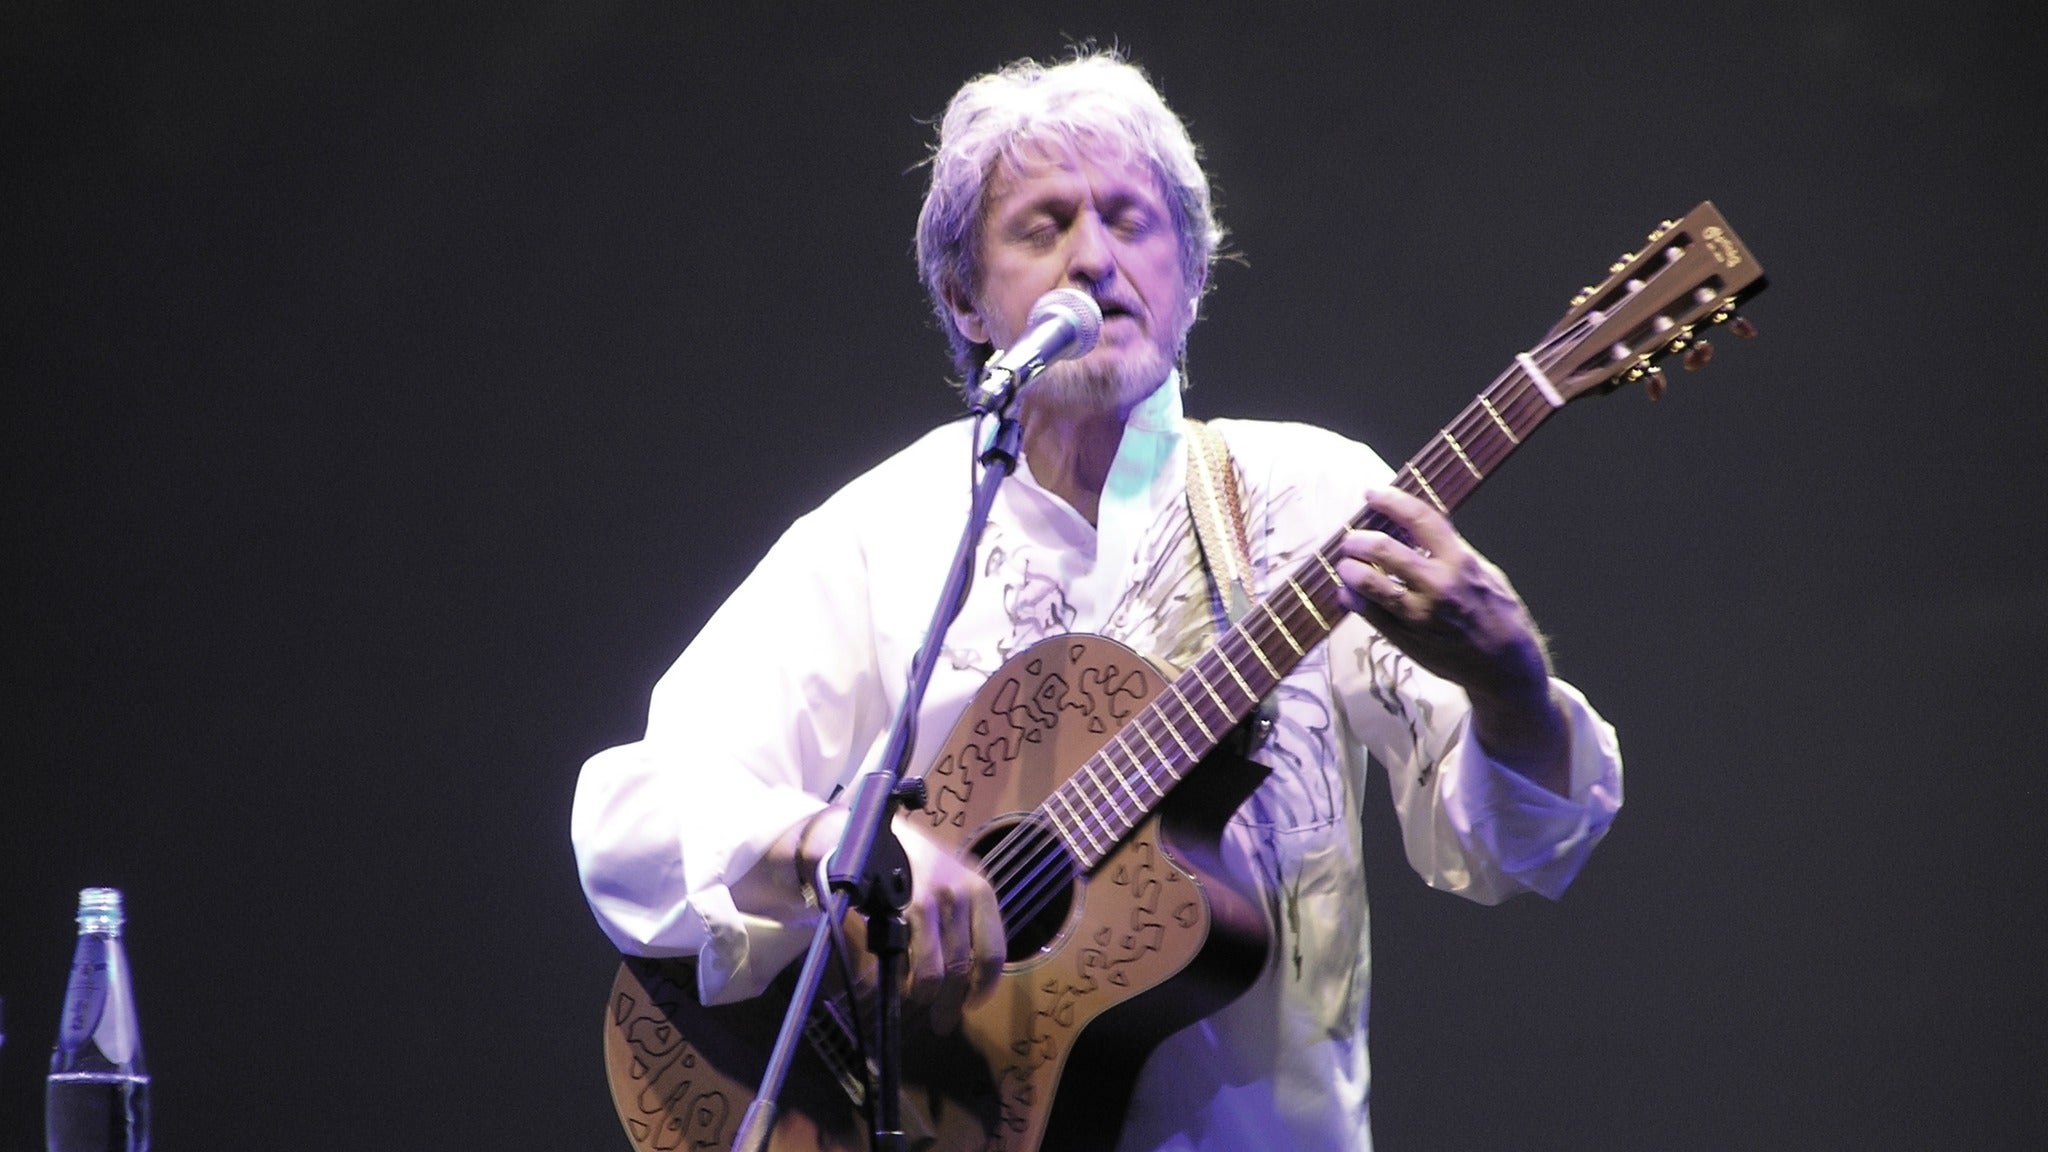 Jon Anderson of Yes at The Saban